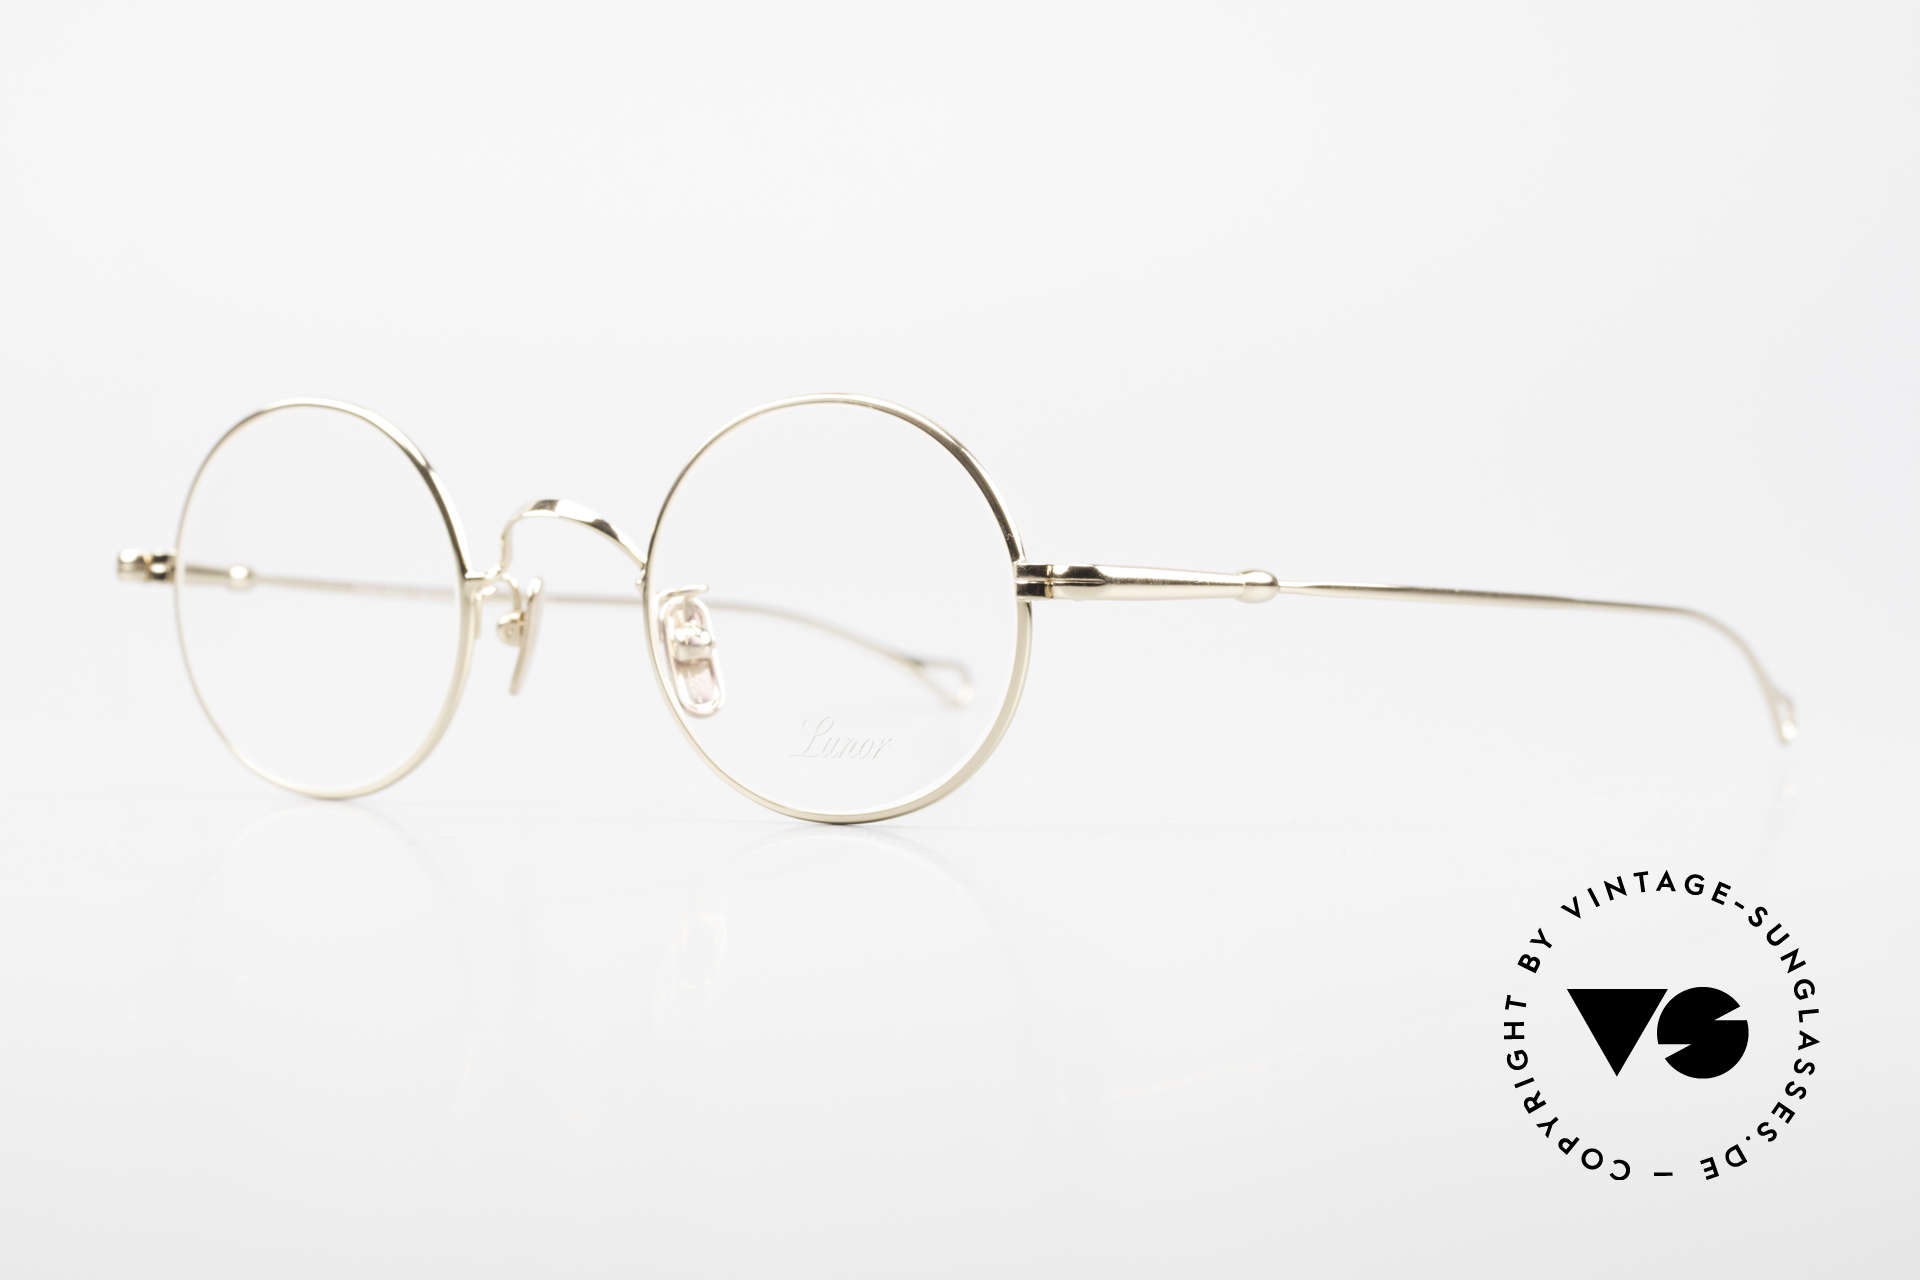 Lunor V 110 Lunor Round Glasses GP Gold, without ostentatious logos (but in a timeless elegance), Made for Men and Women